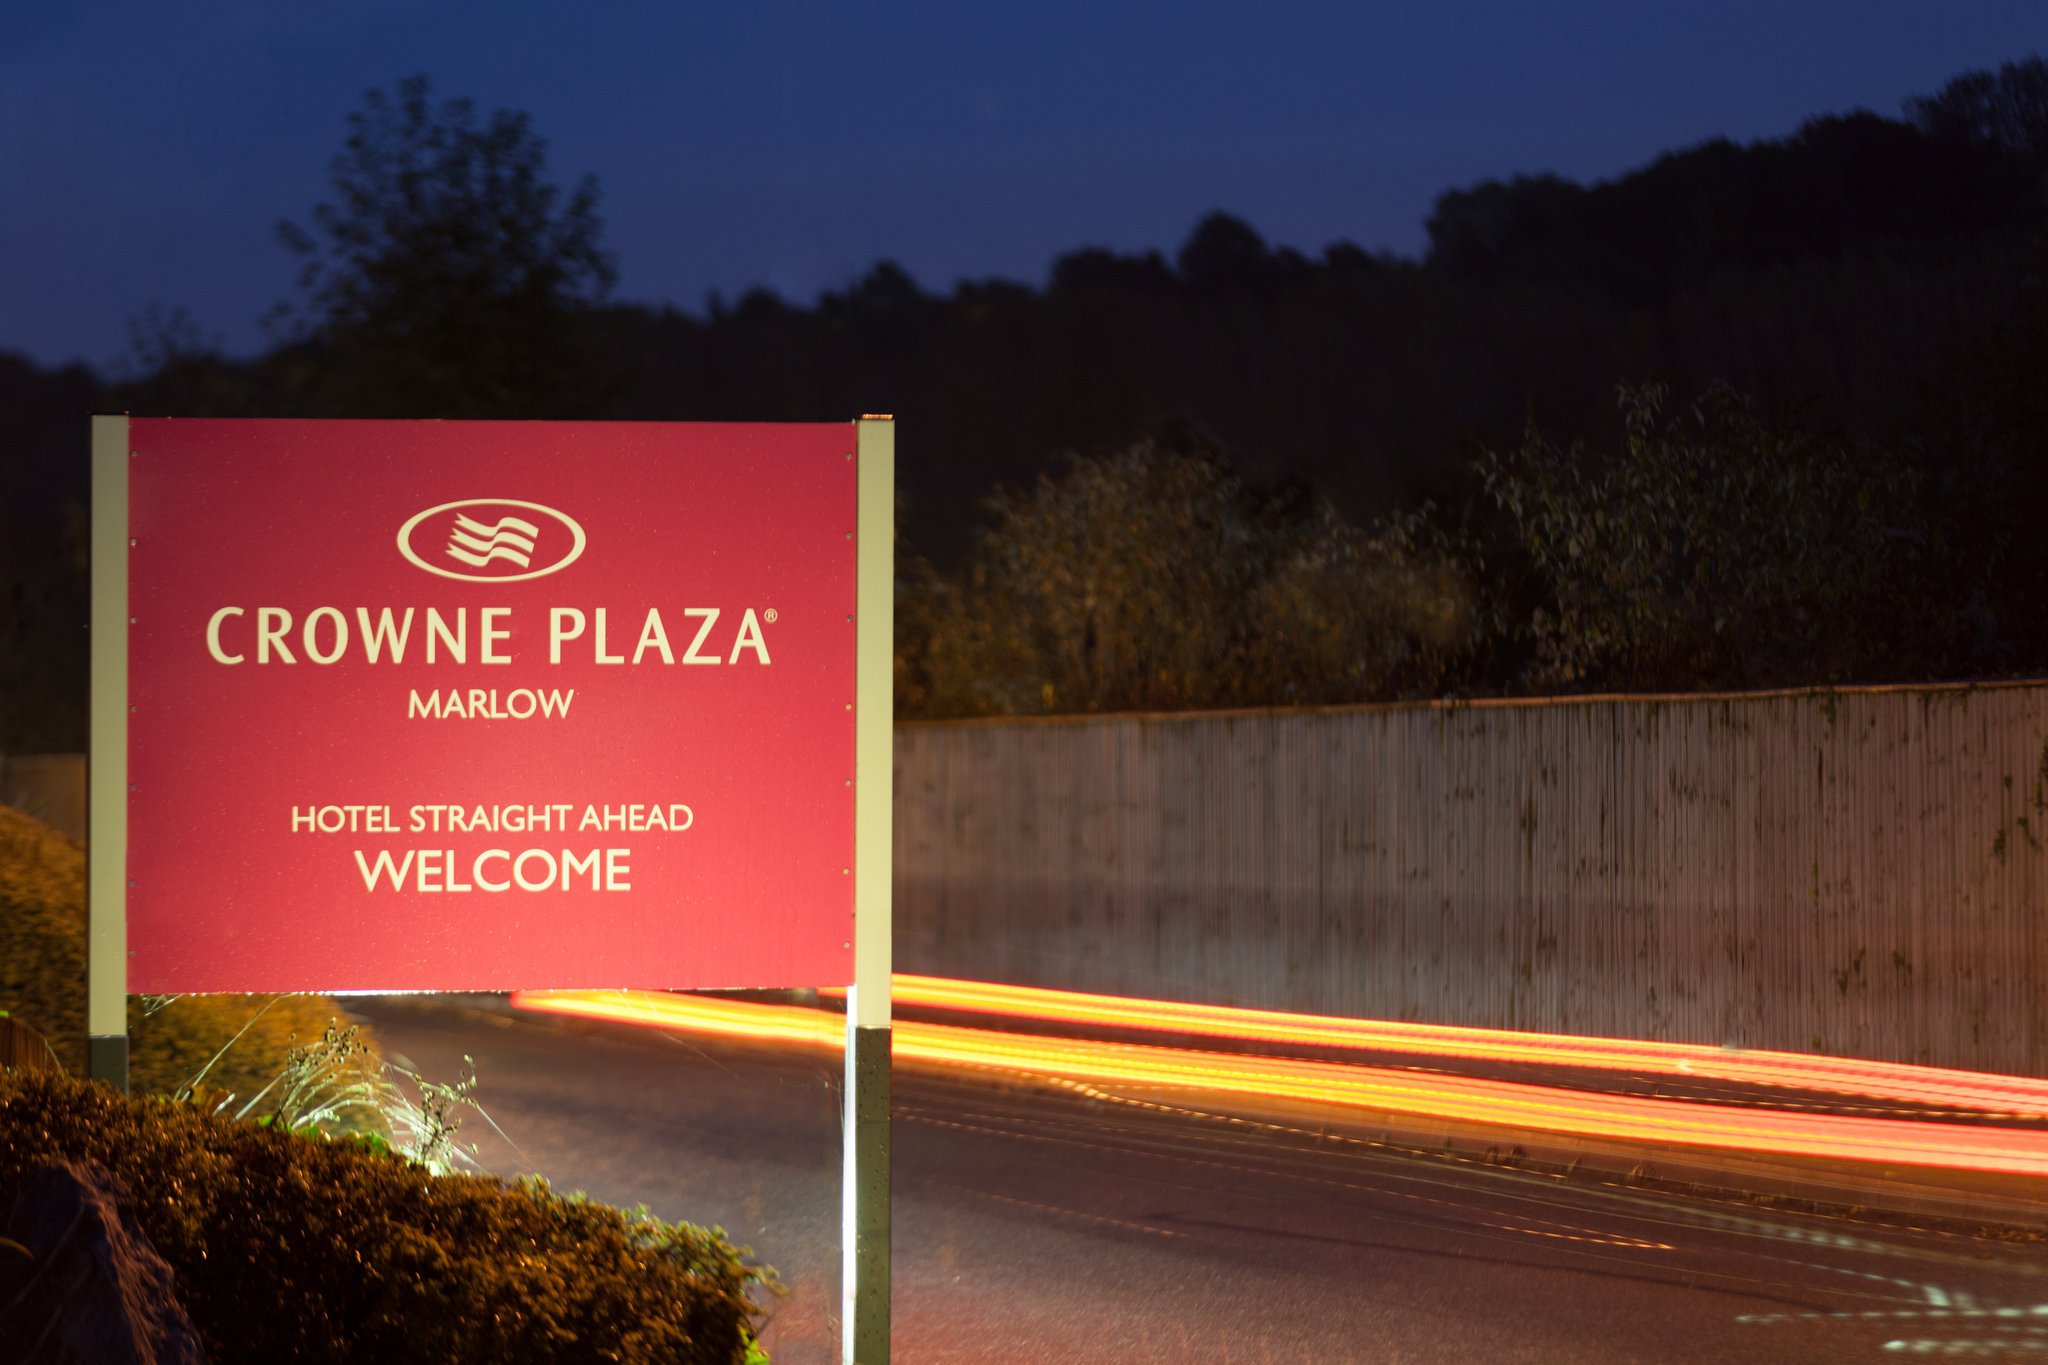 Crowne Plaza Hotel Marlow